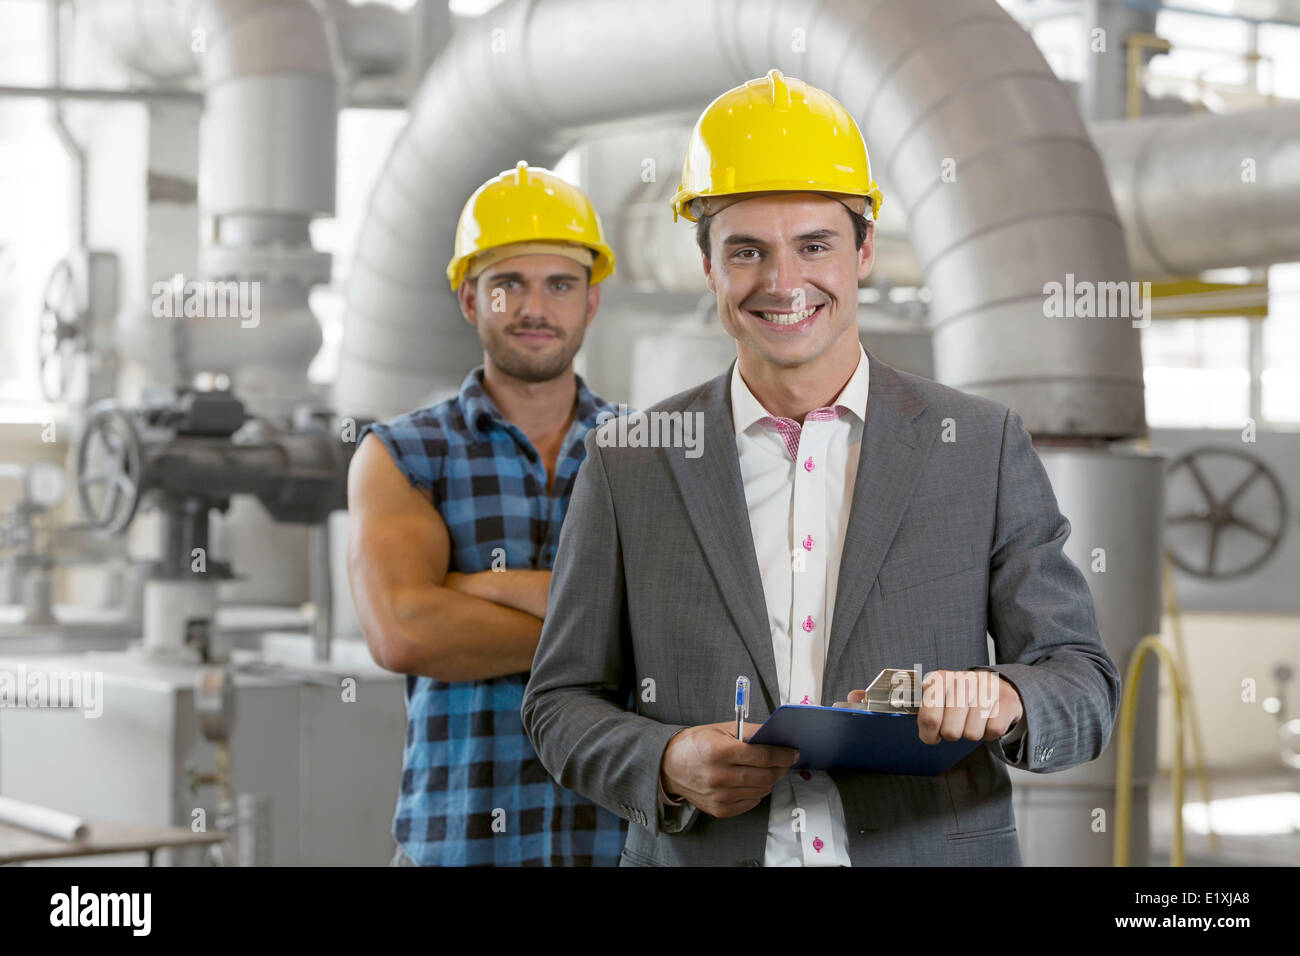 Portrait of young male supervisor holding clipboard with manual worker in background at industry - Stock Image